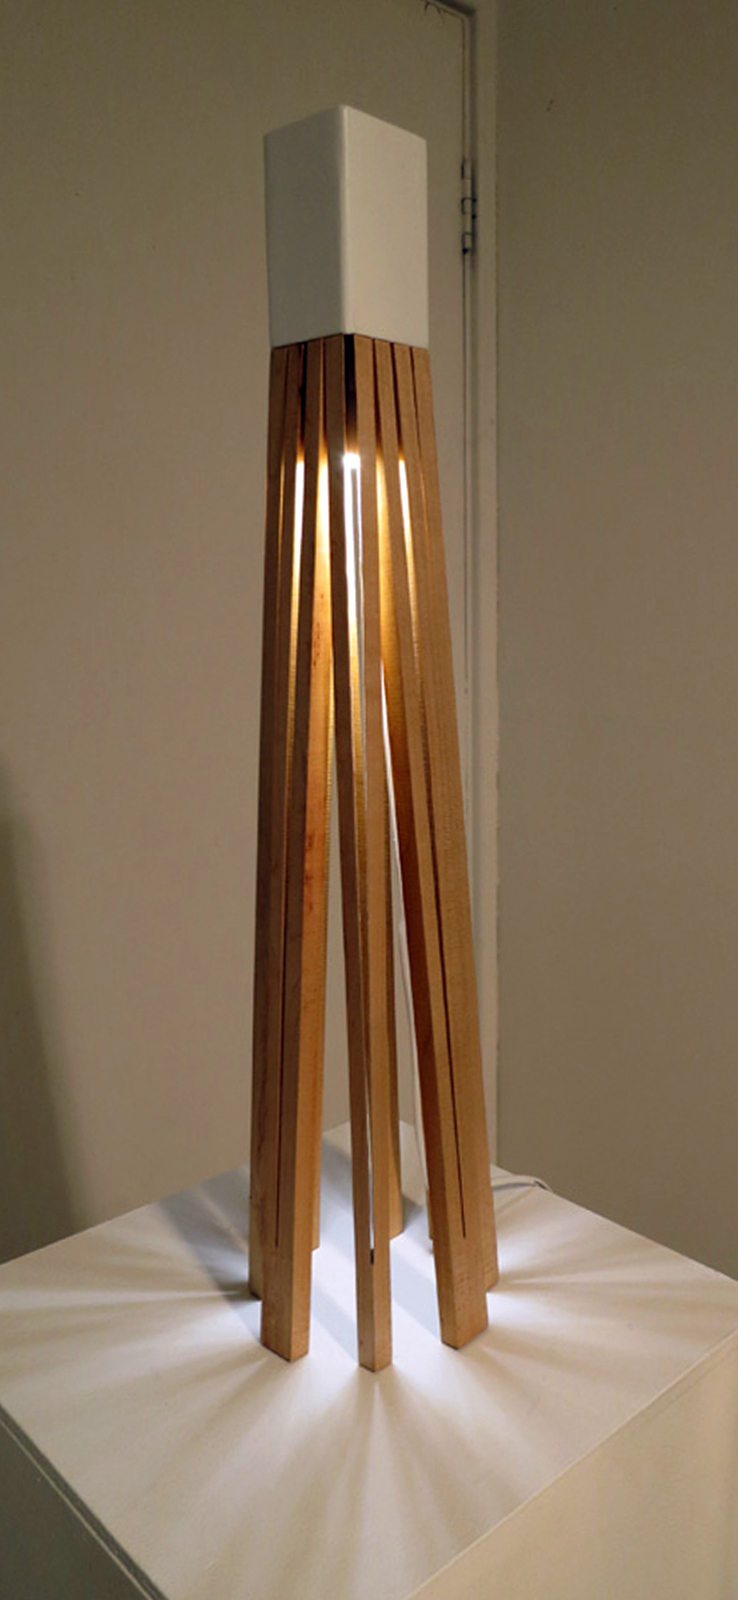 15.  One Eight One , Shannon Riddle, American Rock Maple, aluminium, LED lights (prototype), EOI